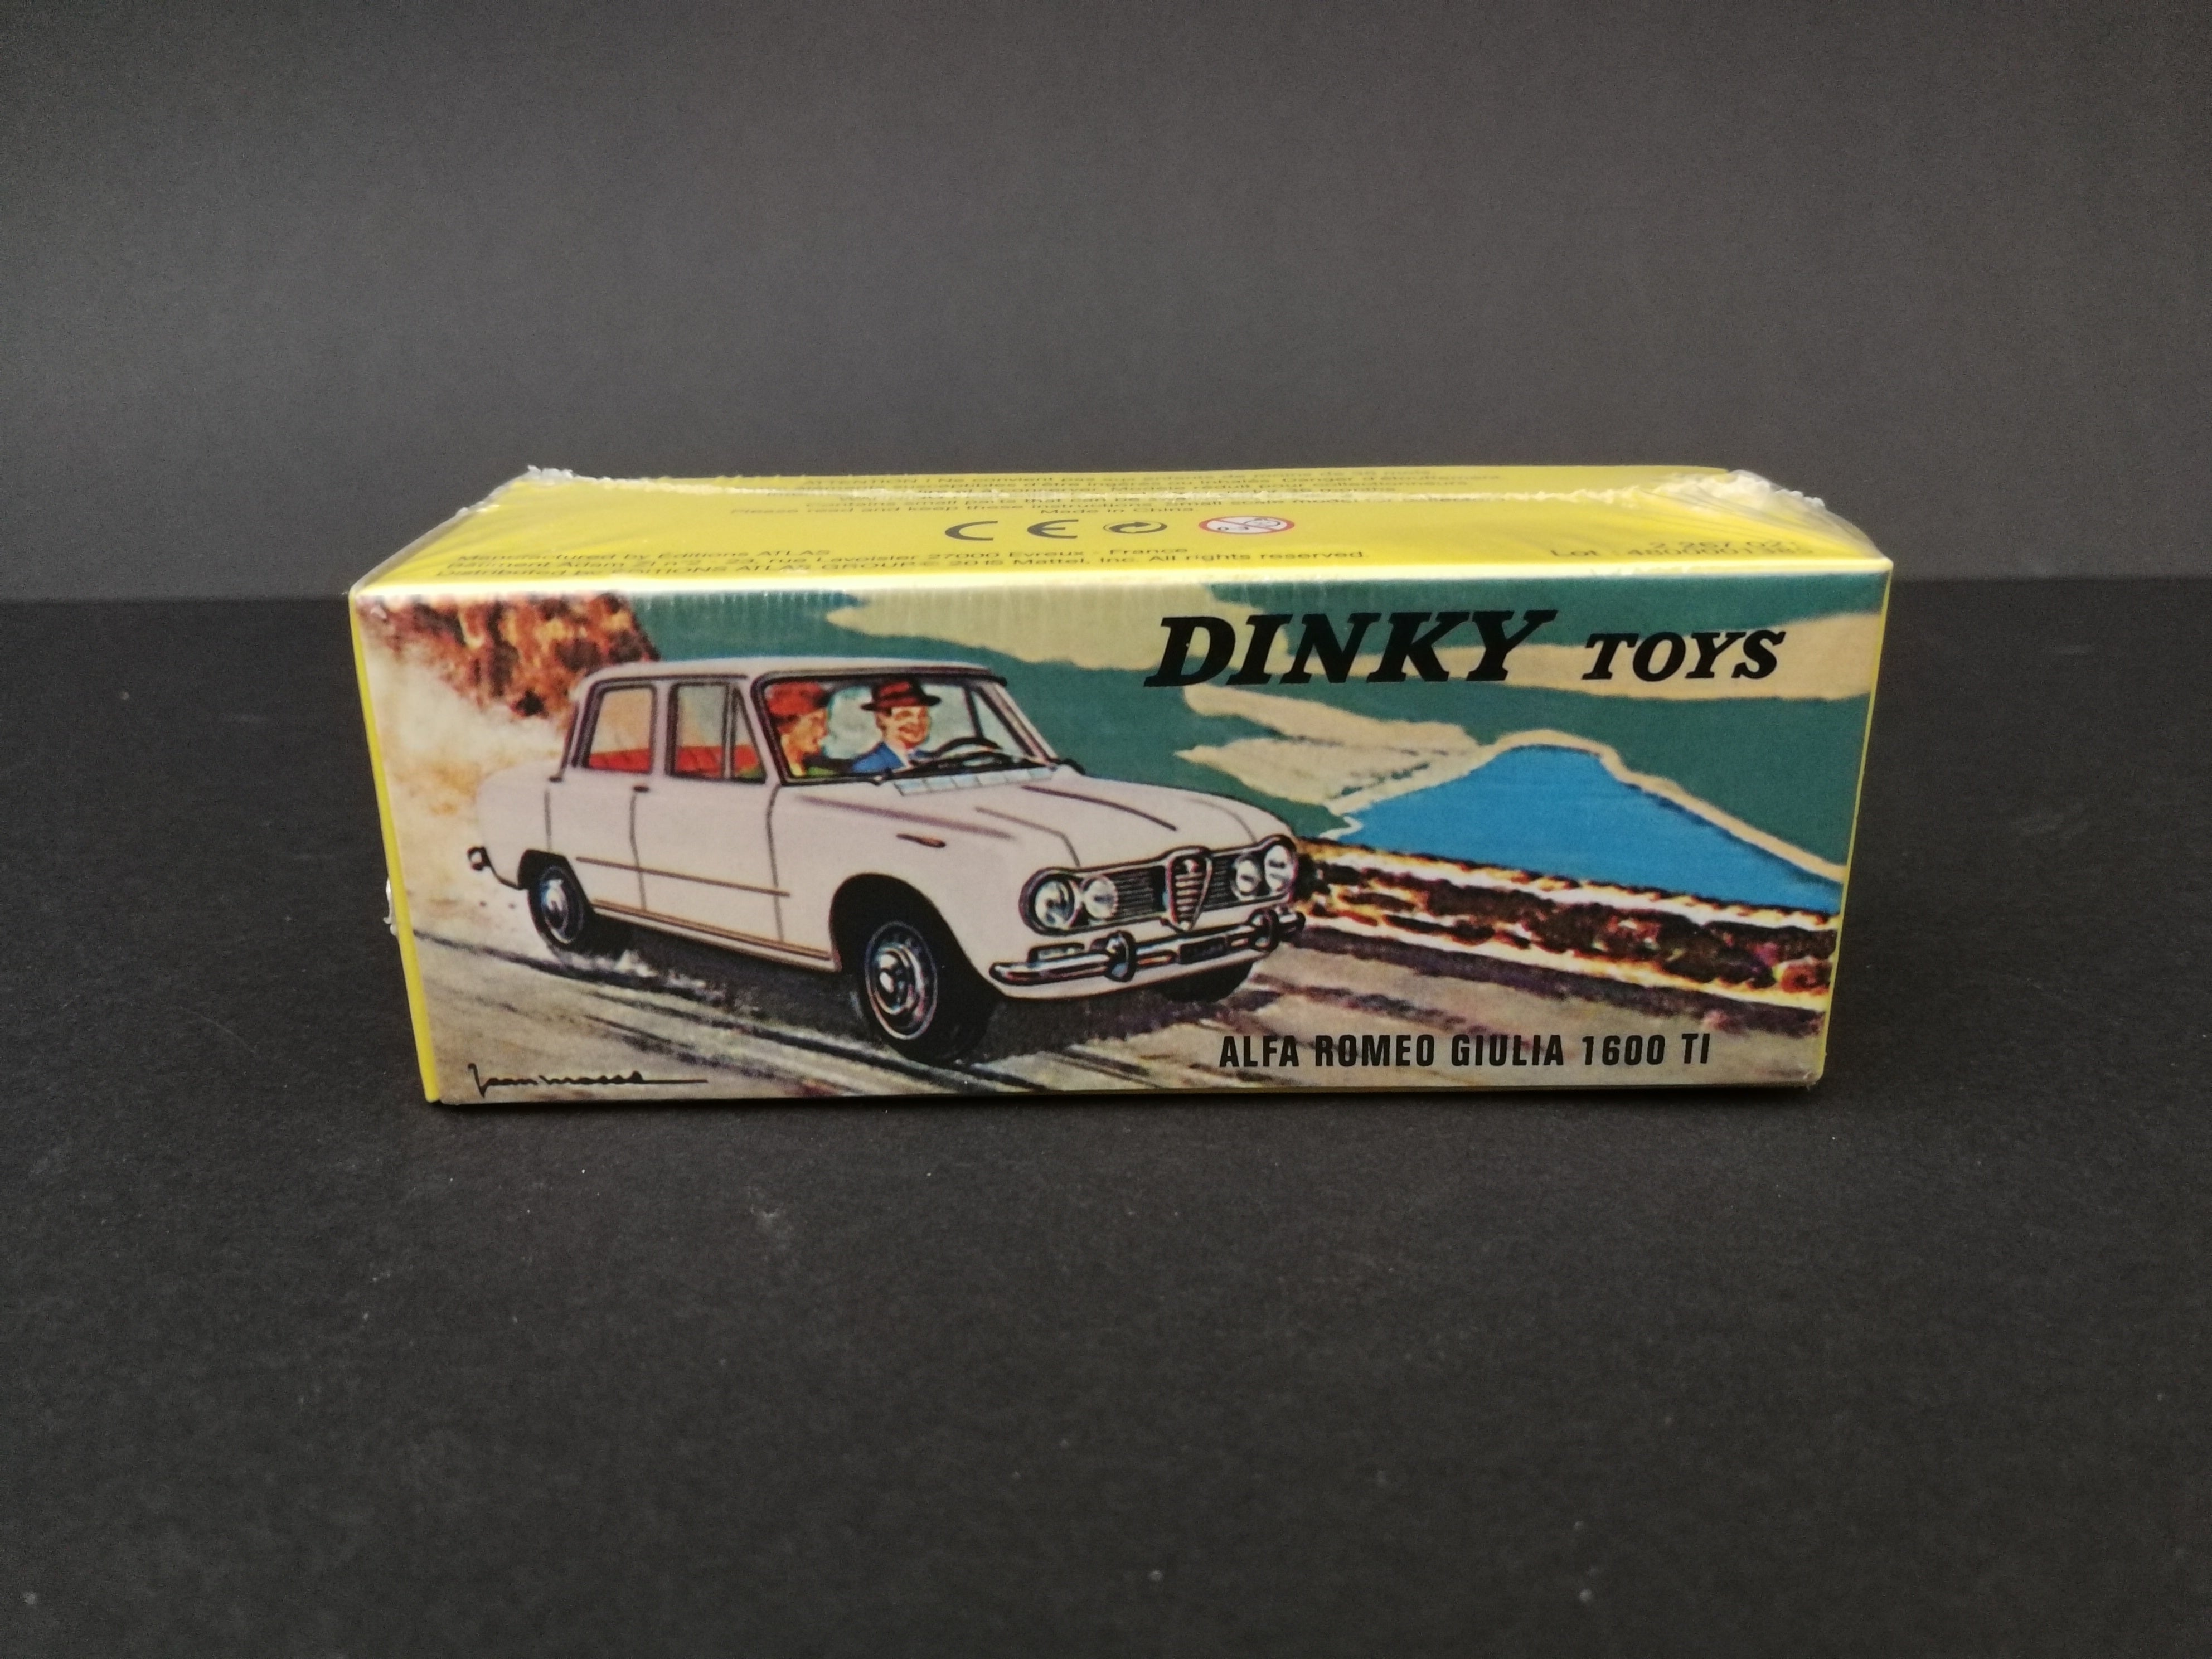 Alfa Romeo Giulia 1600 TI - Dinky Toys 514, in box, have never been opened, front view.